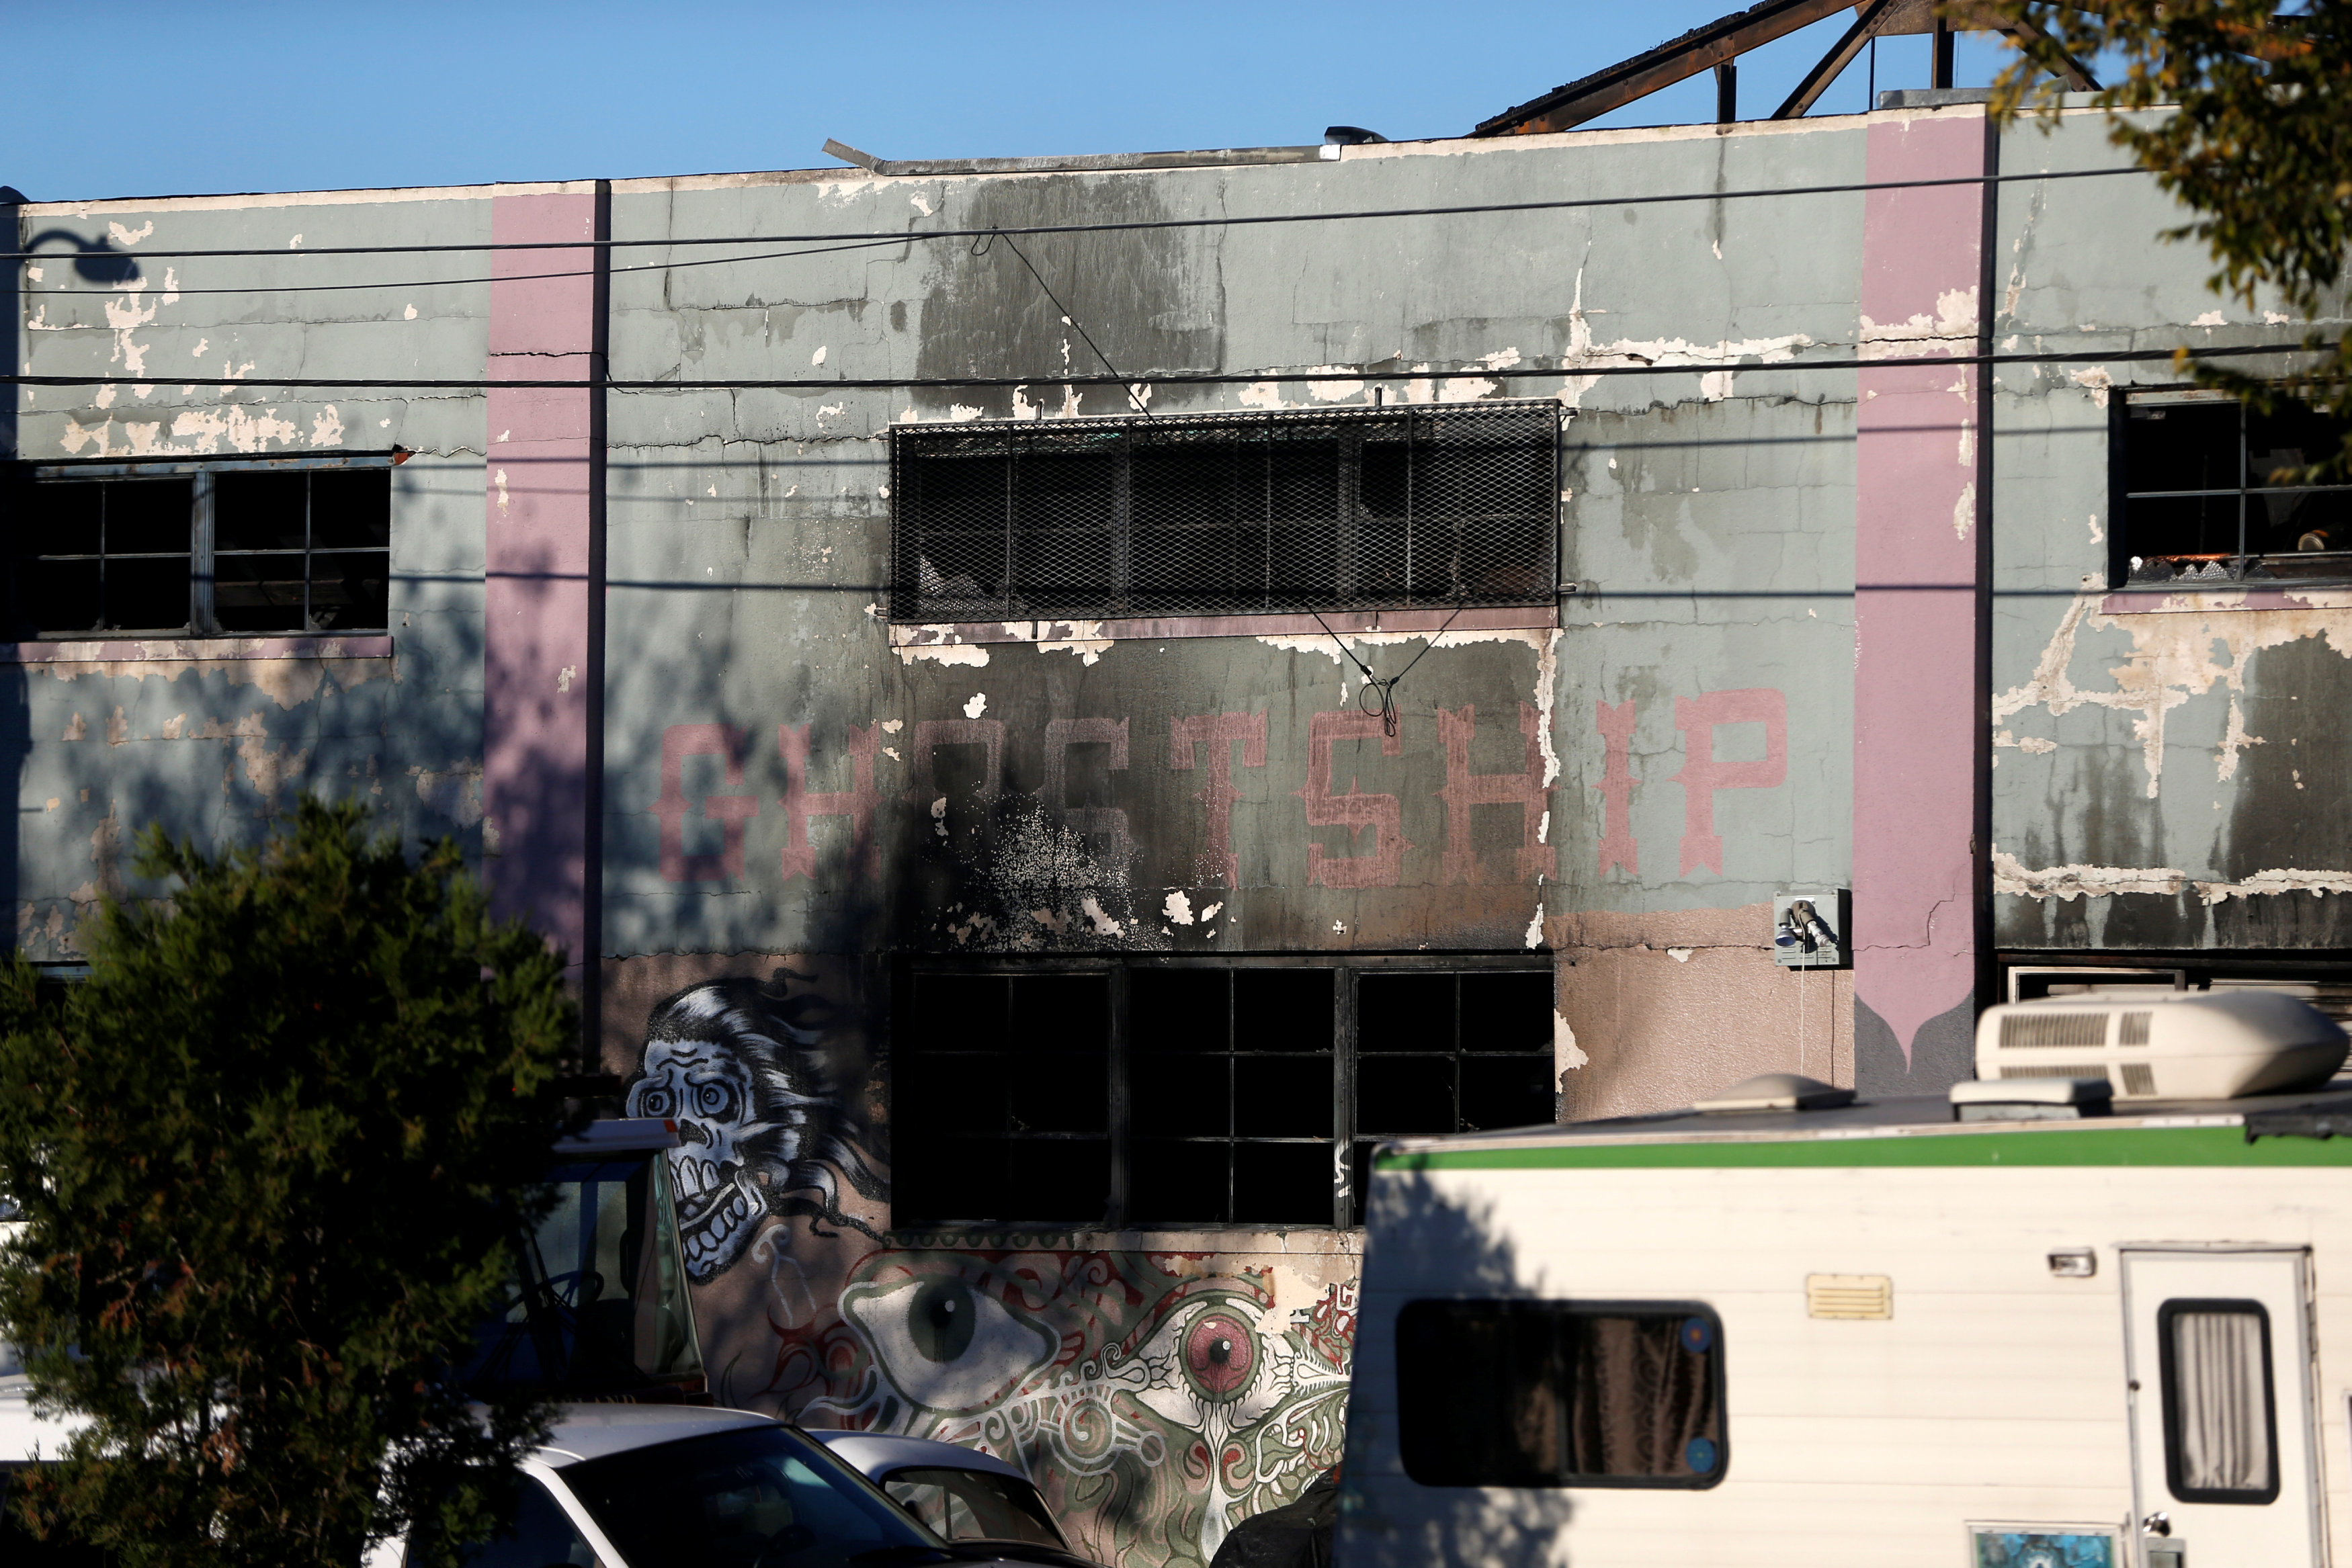 A charred wall is seen outside a warehouse after a fire broke out during an electronic dance party late Friday evening, resulting in at least nine deaths and many unaccounted for in the Fruitvale district of Oakland, California, U.S.